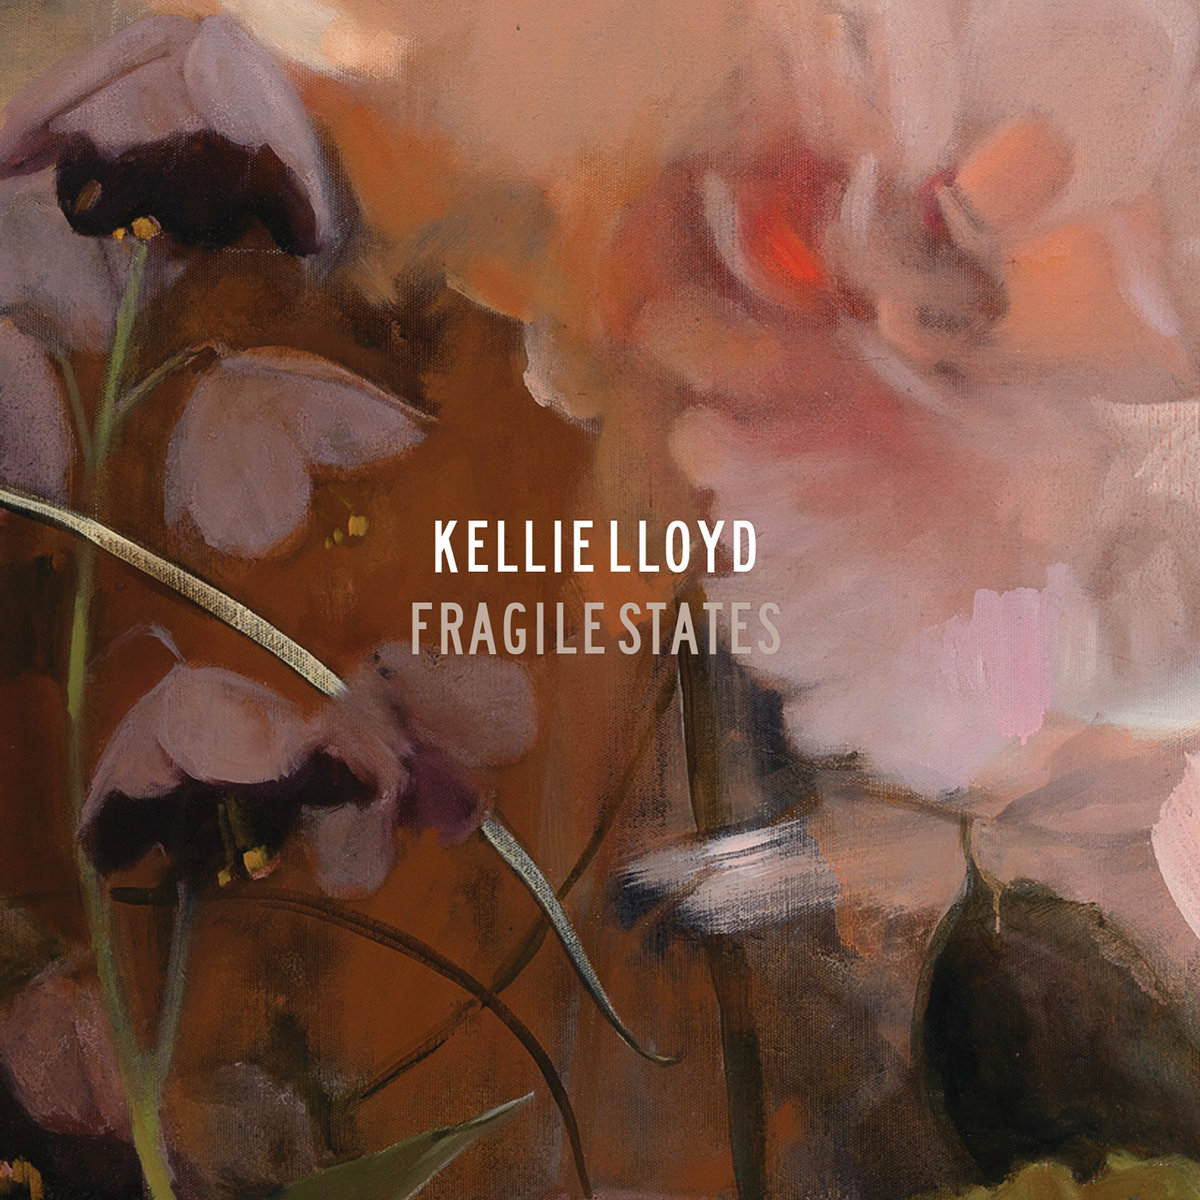 Album cover, with drooping pink flowers fading into a pink and orange background.